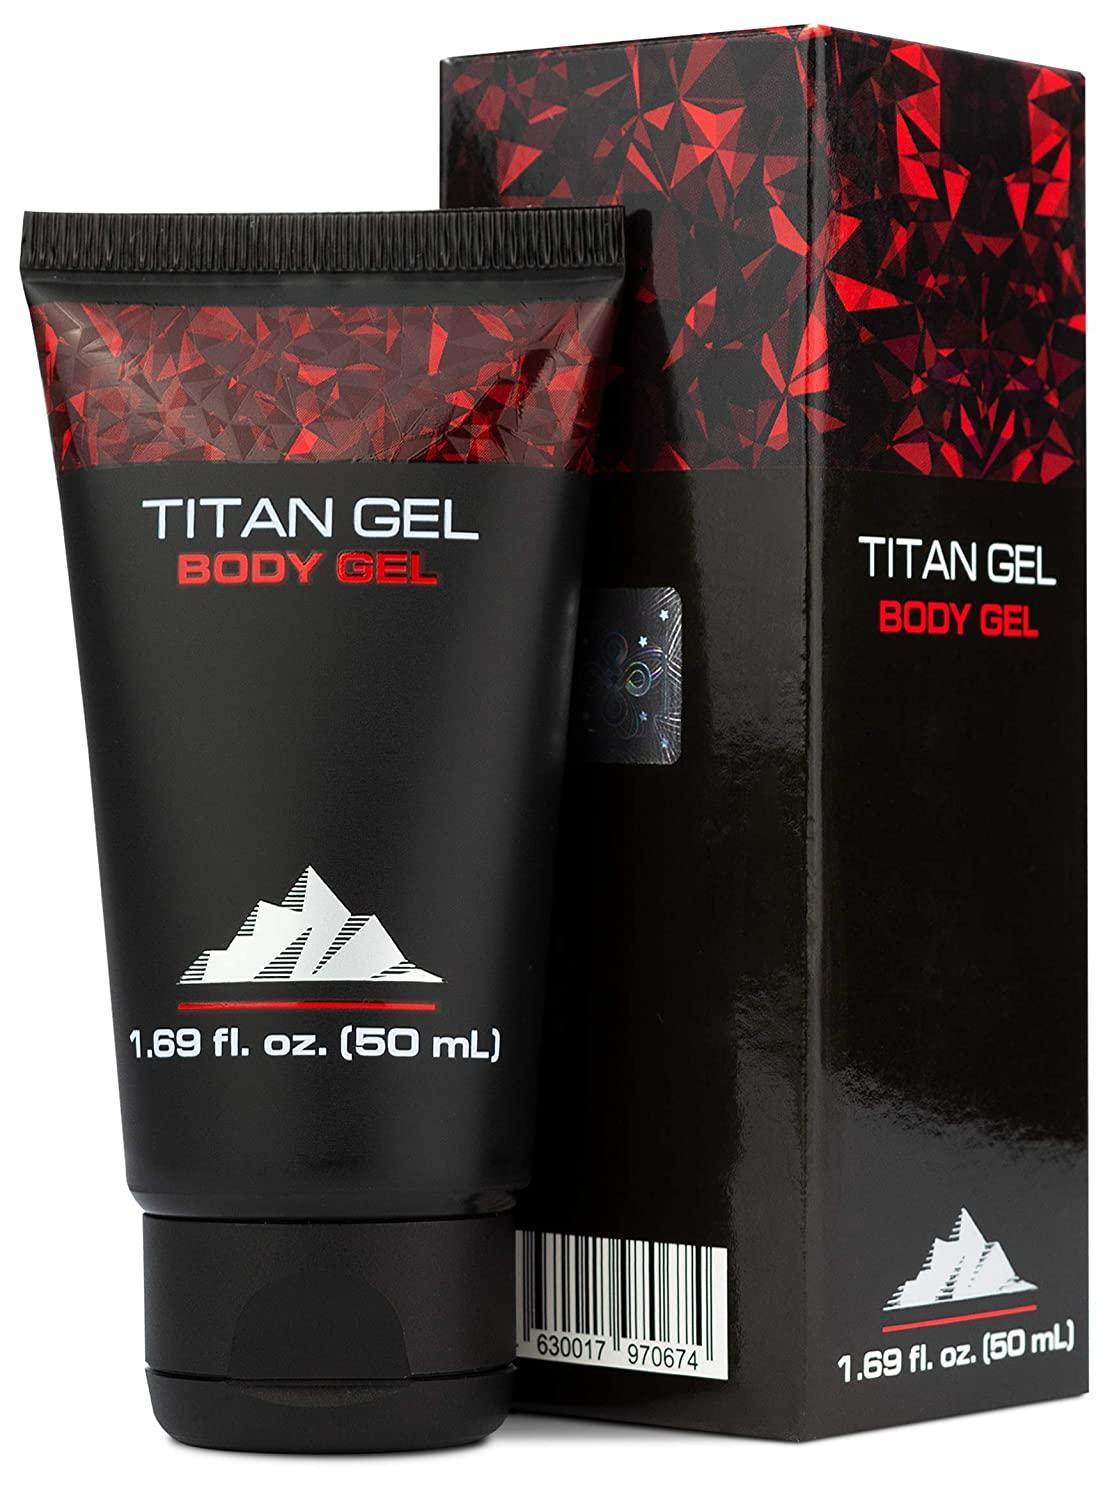 Titan Gel For Man Original Gold Body Gel For Male Enhacement And Enlargement Awakening Muscles With Tantric Massage – Jelly Gel